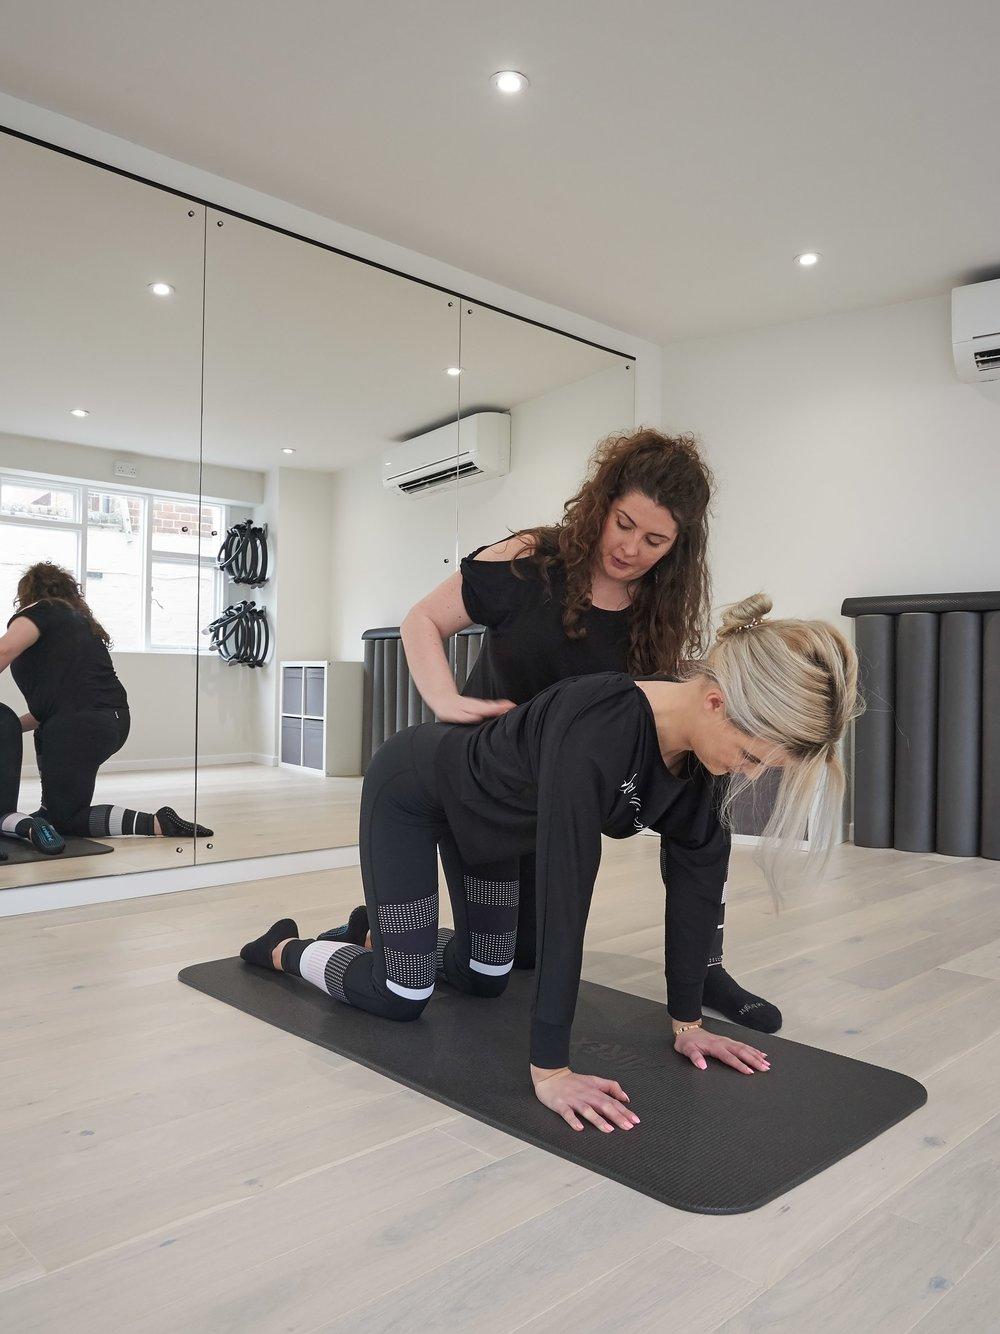 How it works… - Purchase our Mycore Mat Payment Plan - First month HALF PRICE. (Enter code 'PILATESNEW' at checkout.)ORPurchase our Introduction to Matwork 4 week Class Pack - (no commitment or monthly fees).